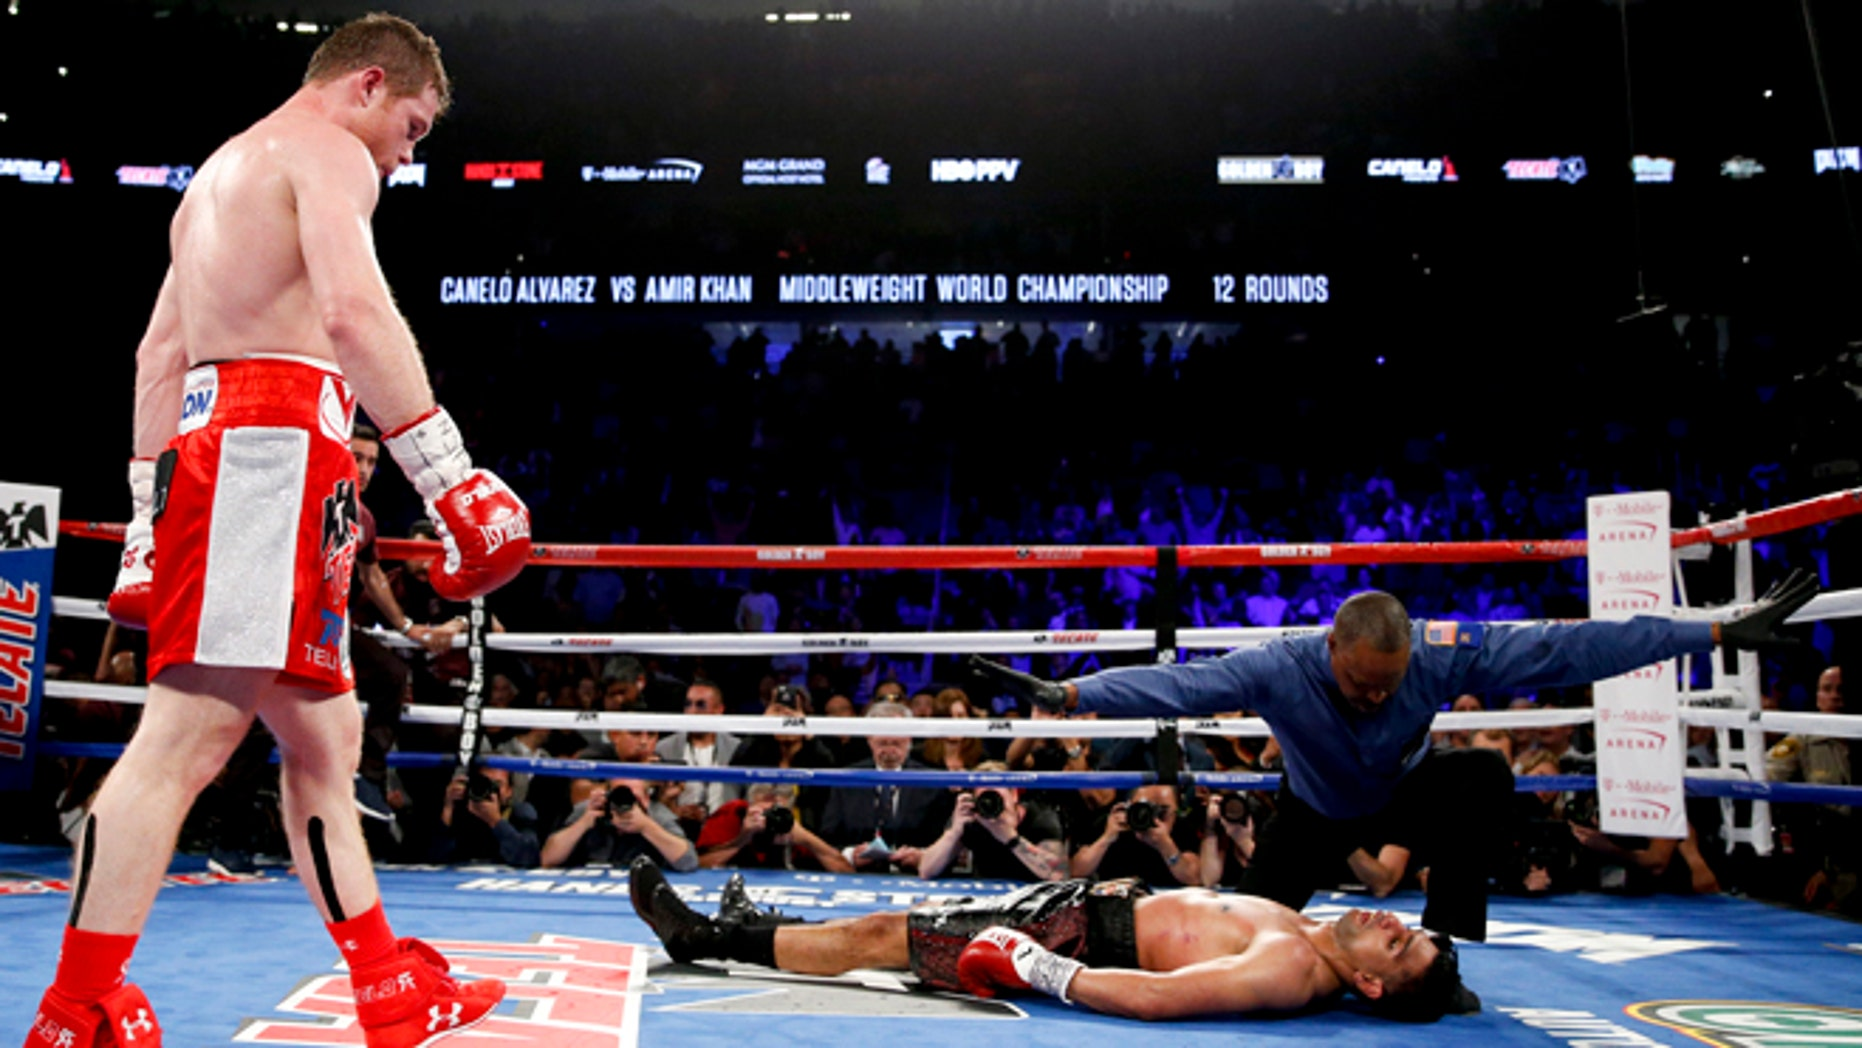 Canelo Alvarez, left, watches after knocking down Amir Khan during their WBC middleweight title fight Saturday, May 7, 2016, in Las Vegas. (AP Photo/John Locher)